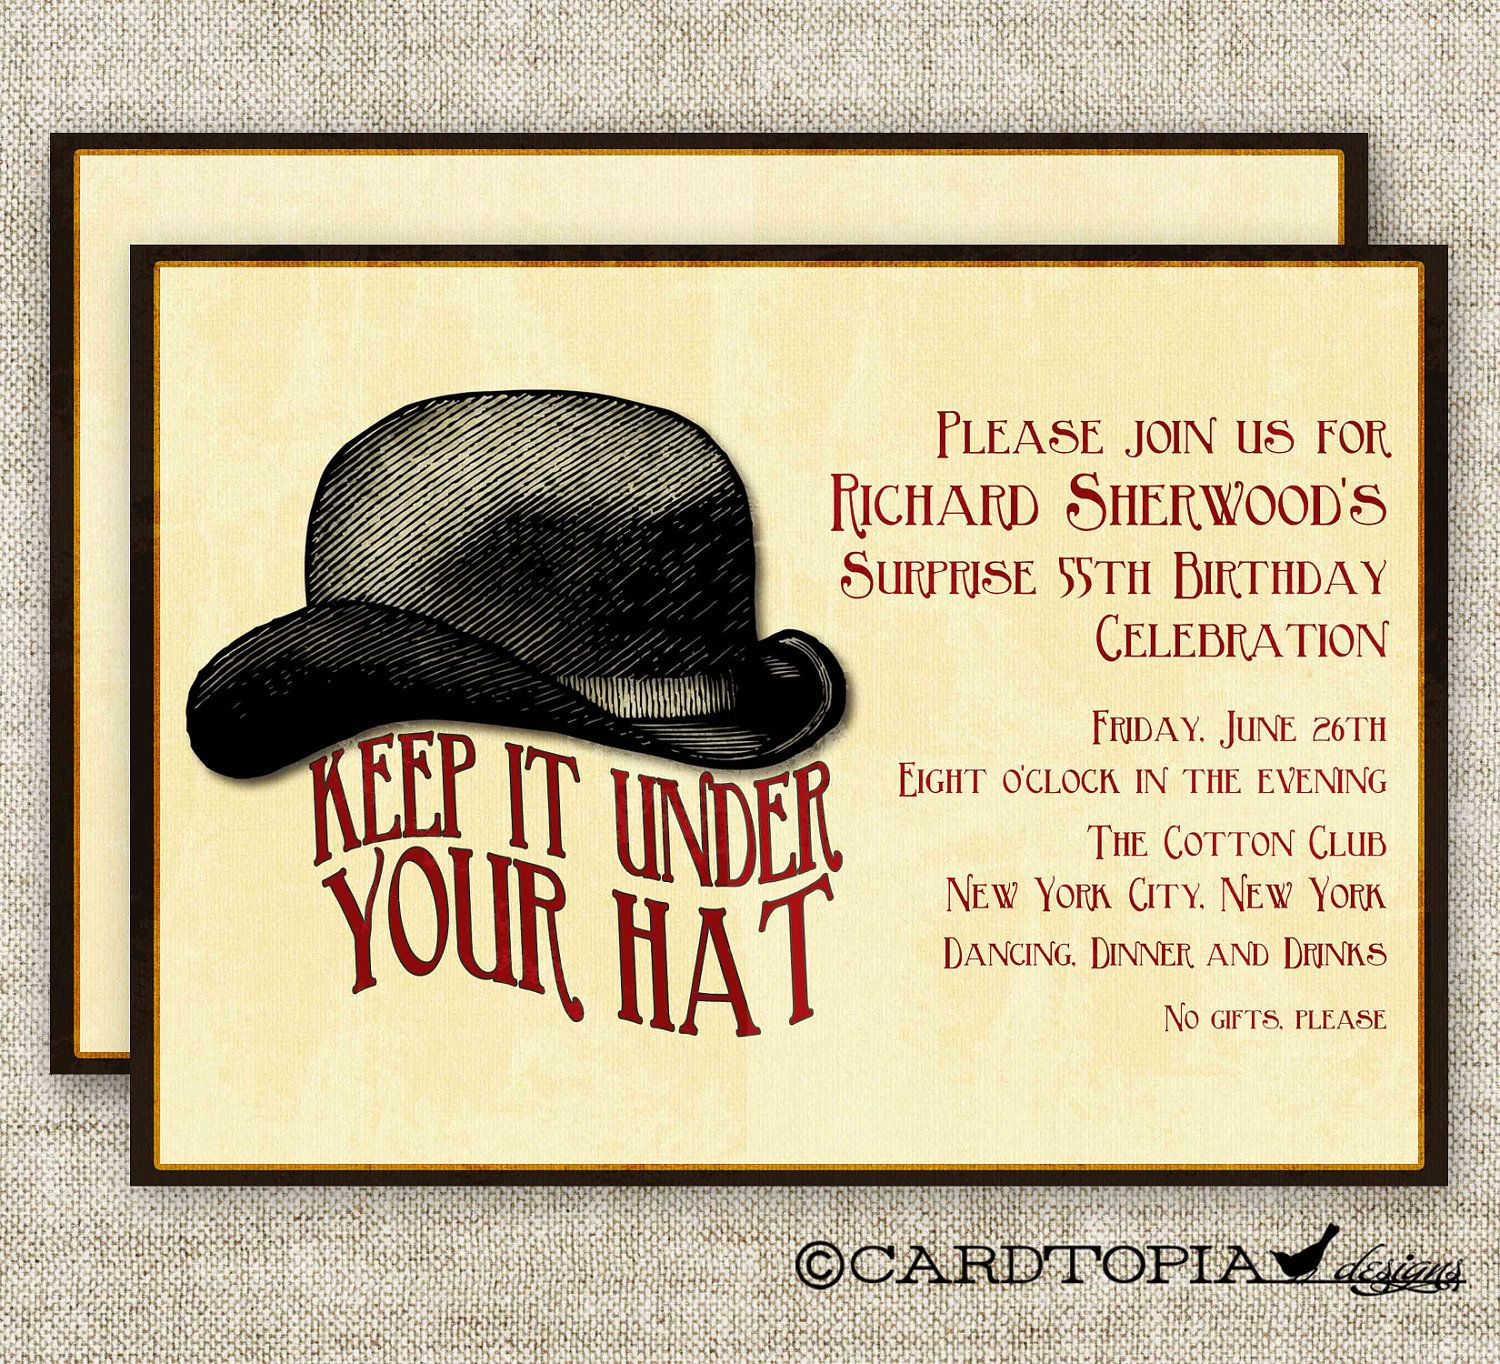 Surprise birthday party invitations vintage bowler hat digital diy surprise birthday party invitations vintage bowler hat digital diy printable personalized 93975551 1400 stopboris Images